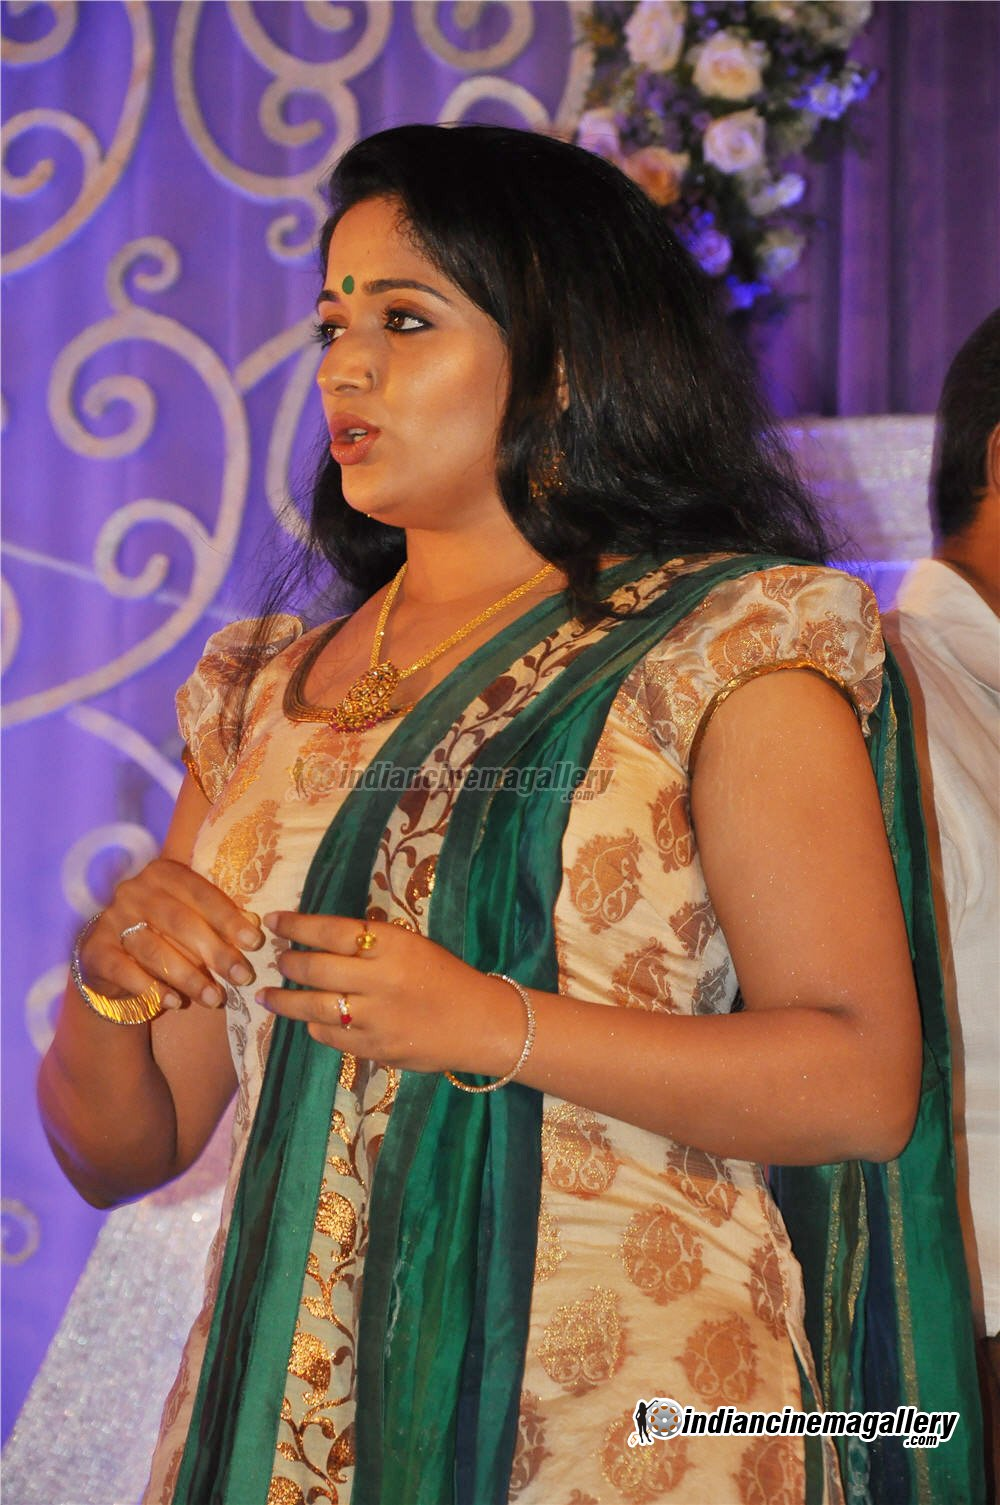 Film Actors And Actress Photo Gallery Kavya Madhavan